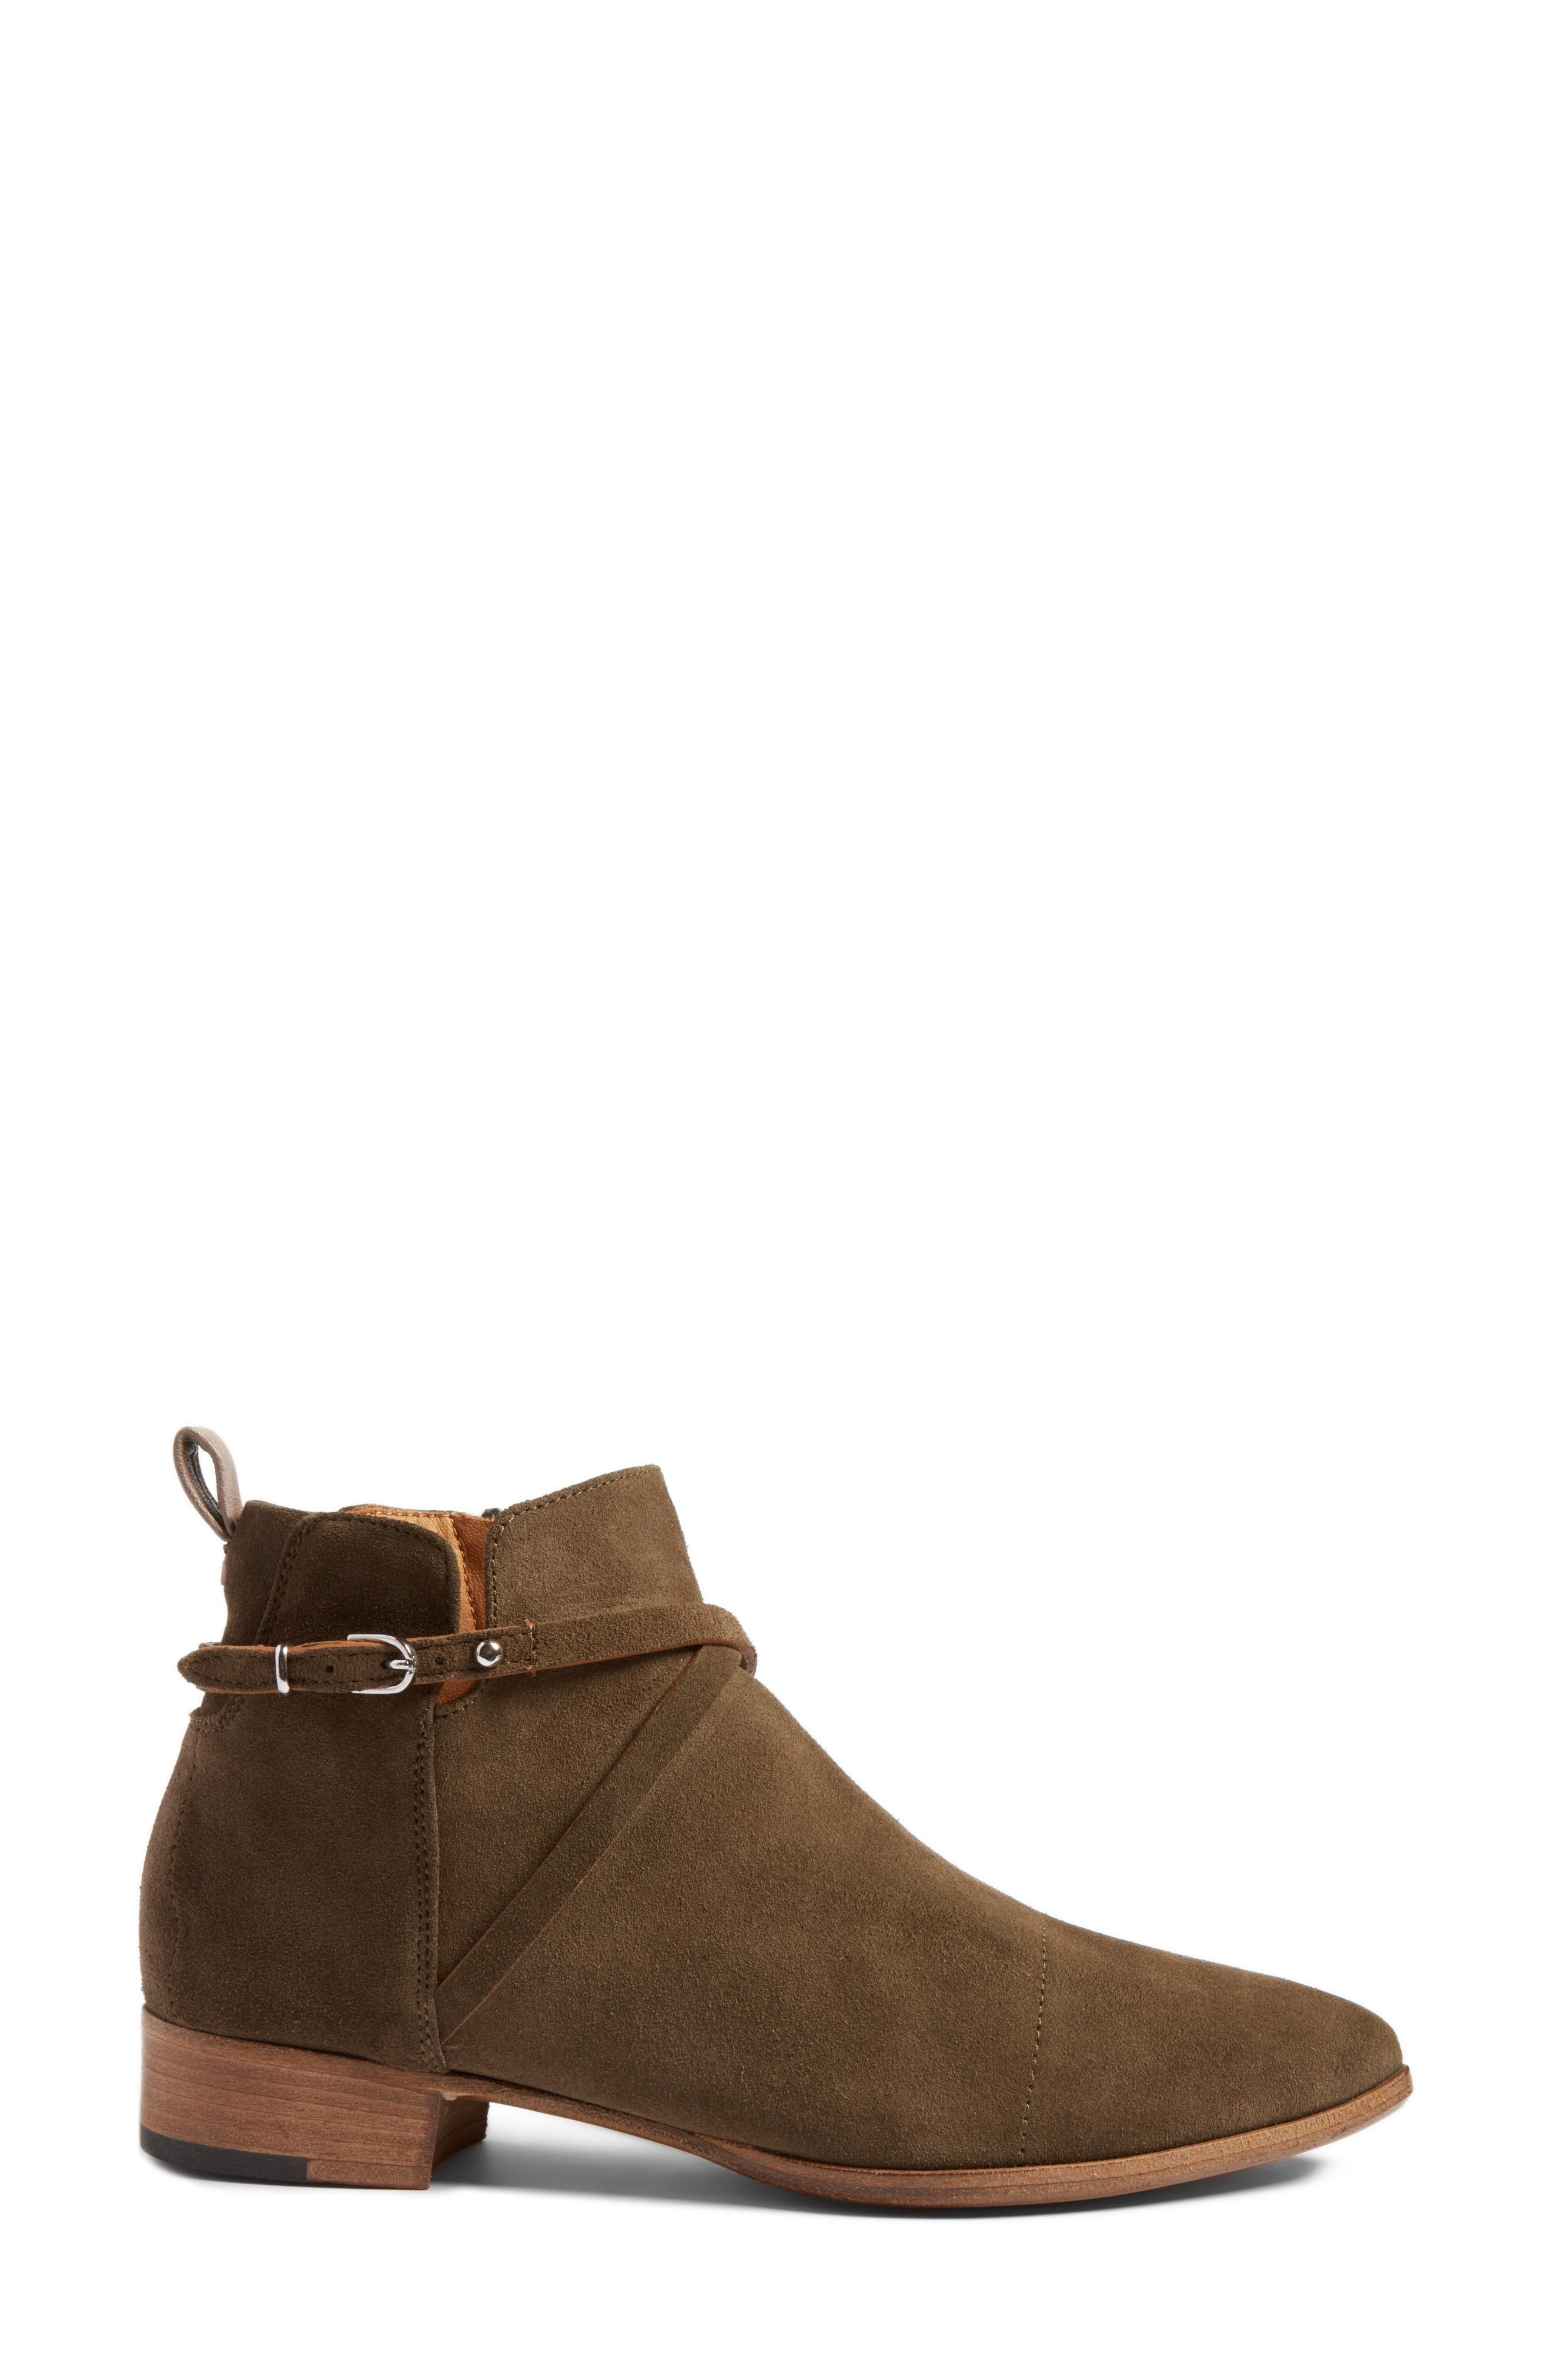 'Mea' Ankle Boot,                             Alternate thumbnail 13, color,